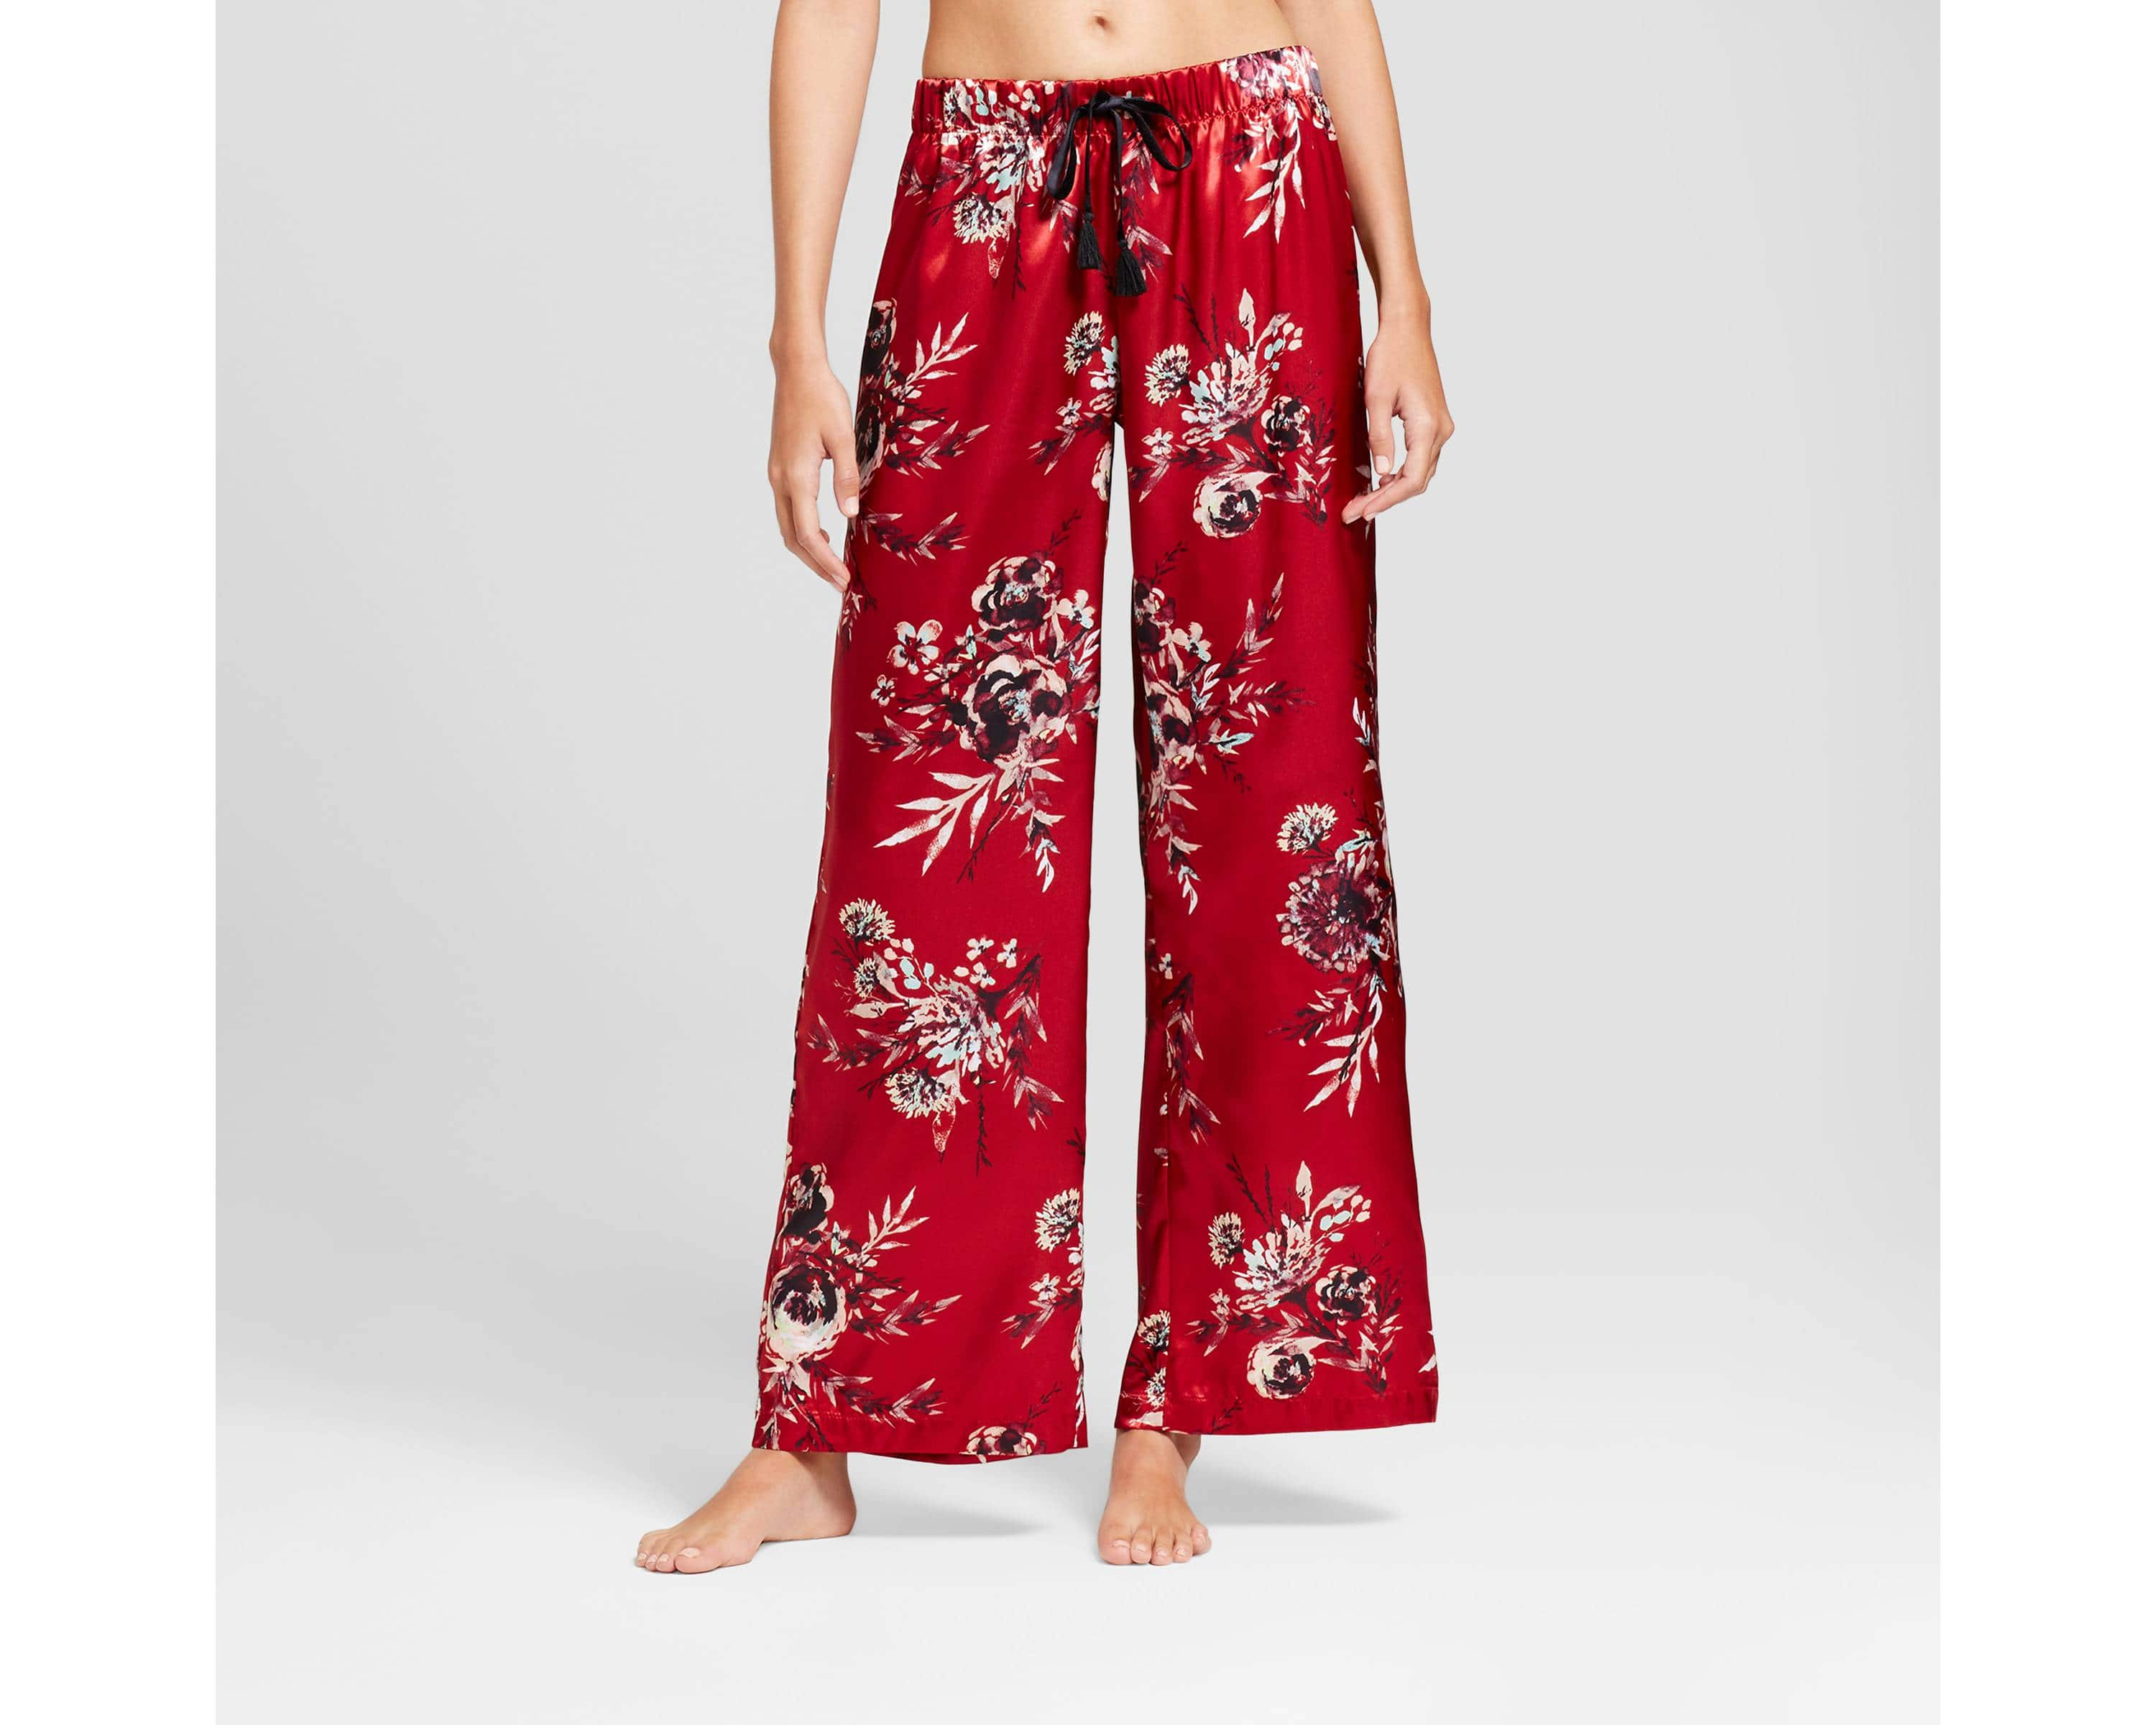 Women's Satin Floral Pajama Pants $6